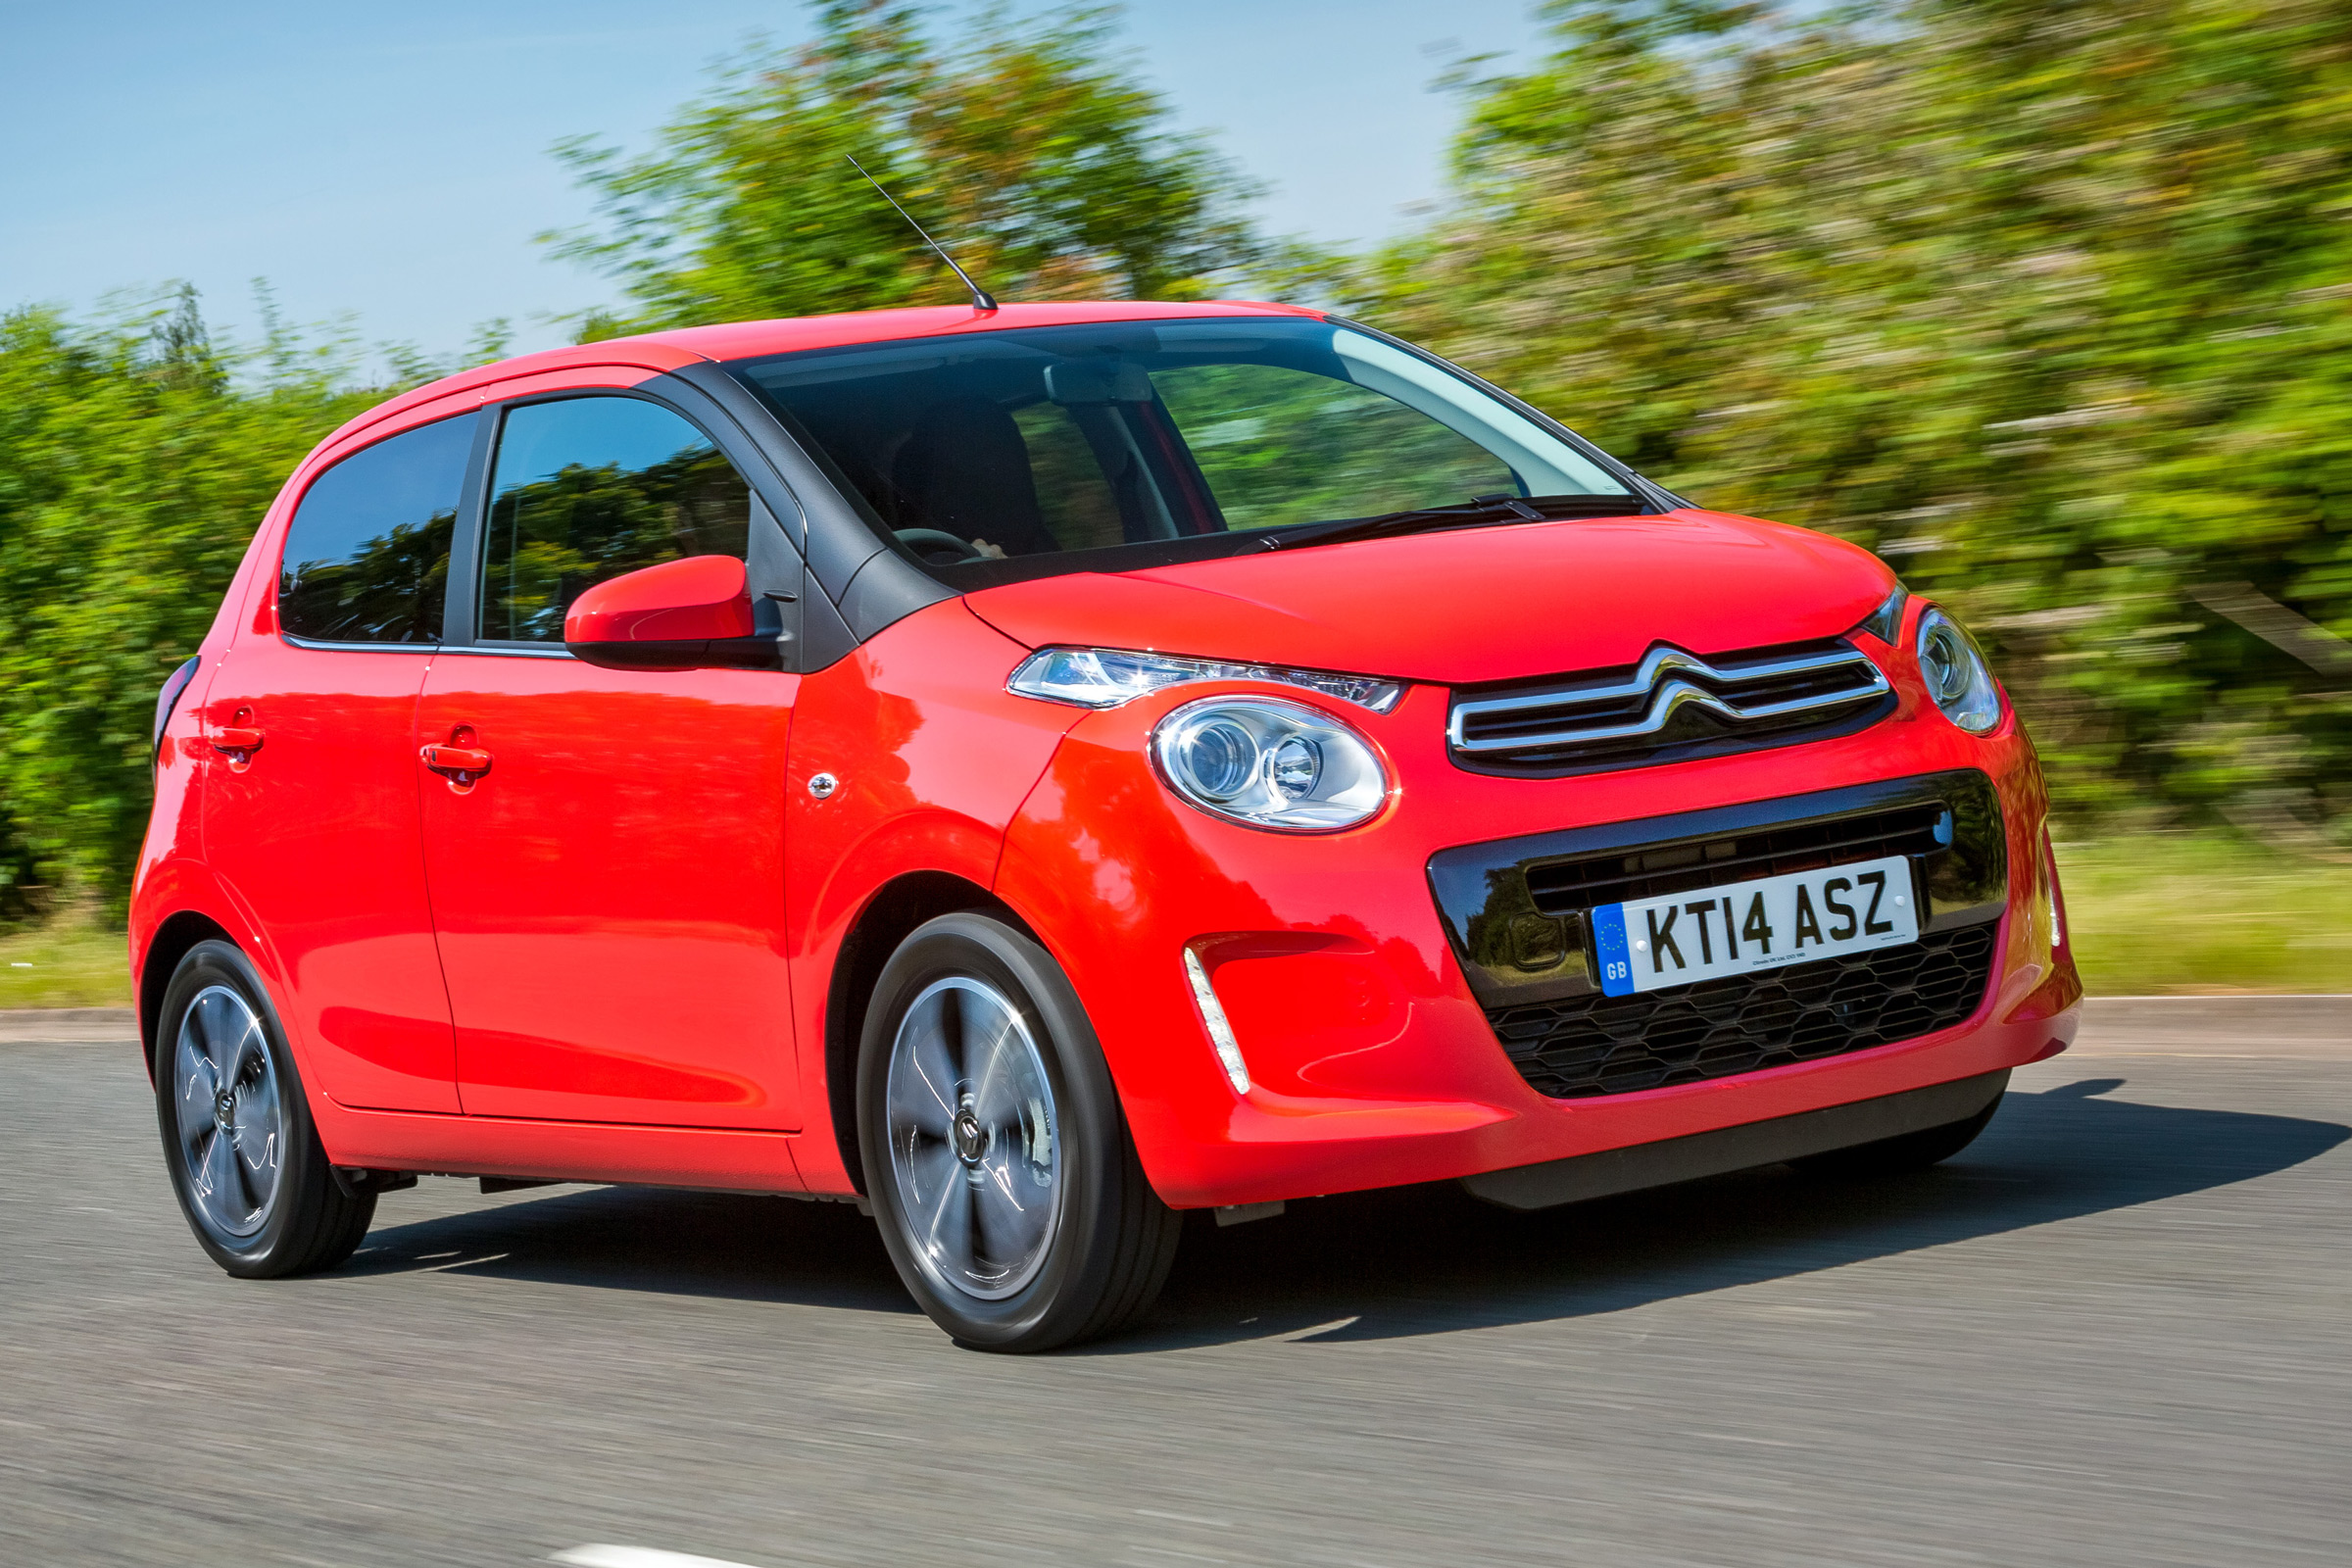 Deals on citroen c1 target online coupon codes 5 off 50 citroen c1 hatchback 12 puretech feel 5dr business contract hire car click here to view other deals for this vehicleree years servicing two years fandeluxe Images